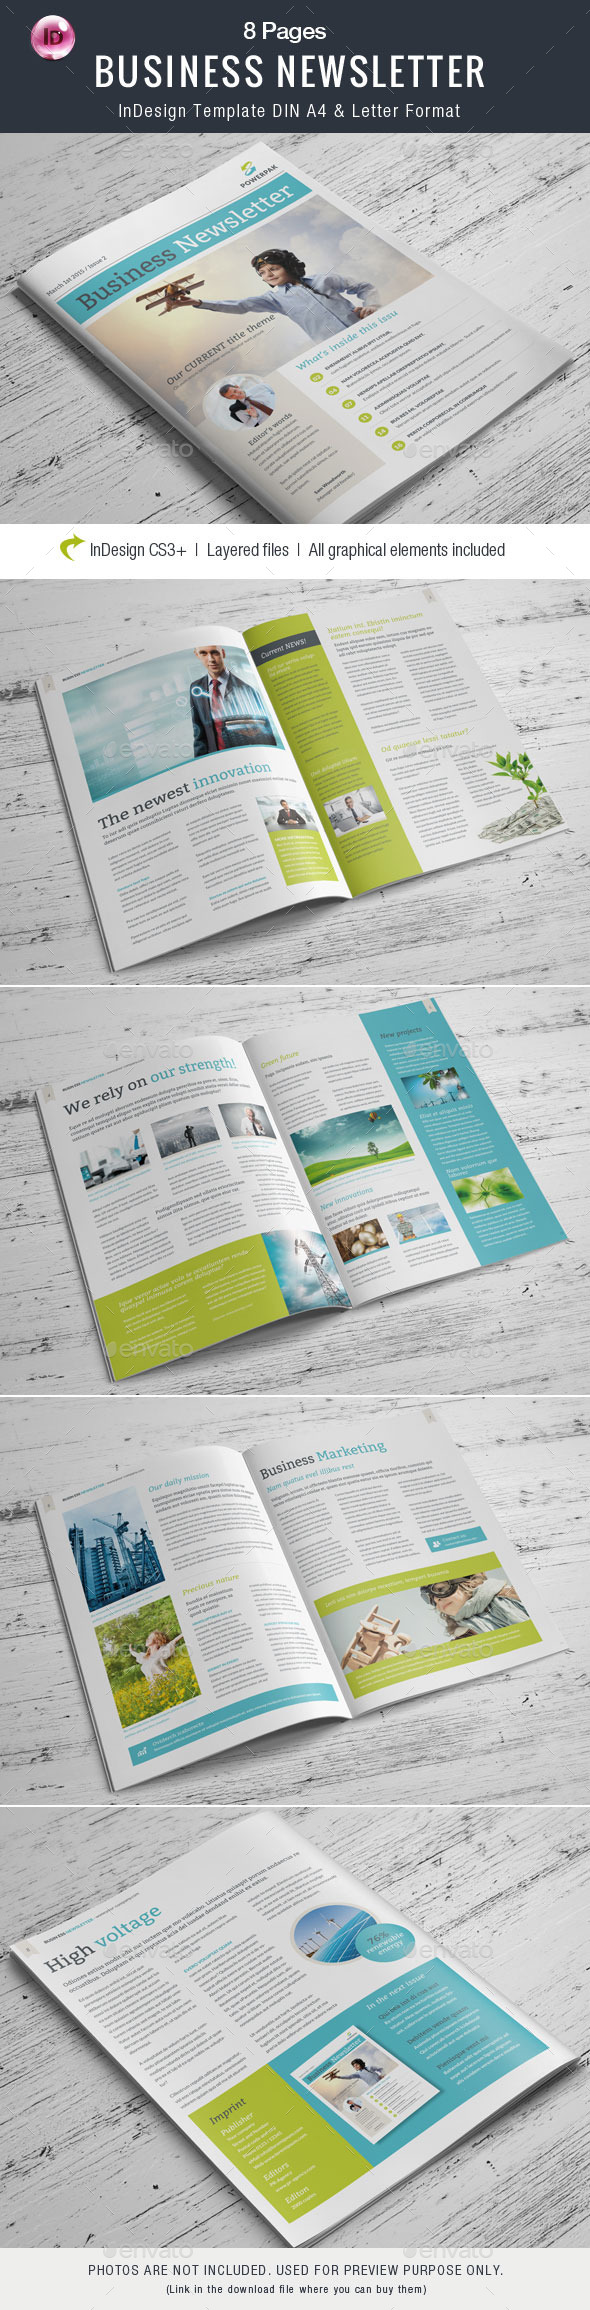 GraphicRiver Business Newsletter 8 pages 10904768